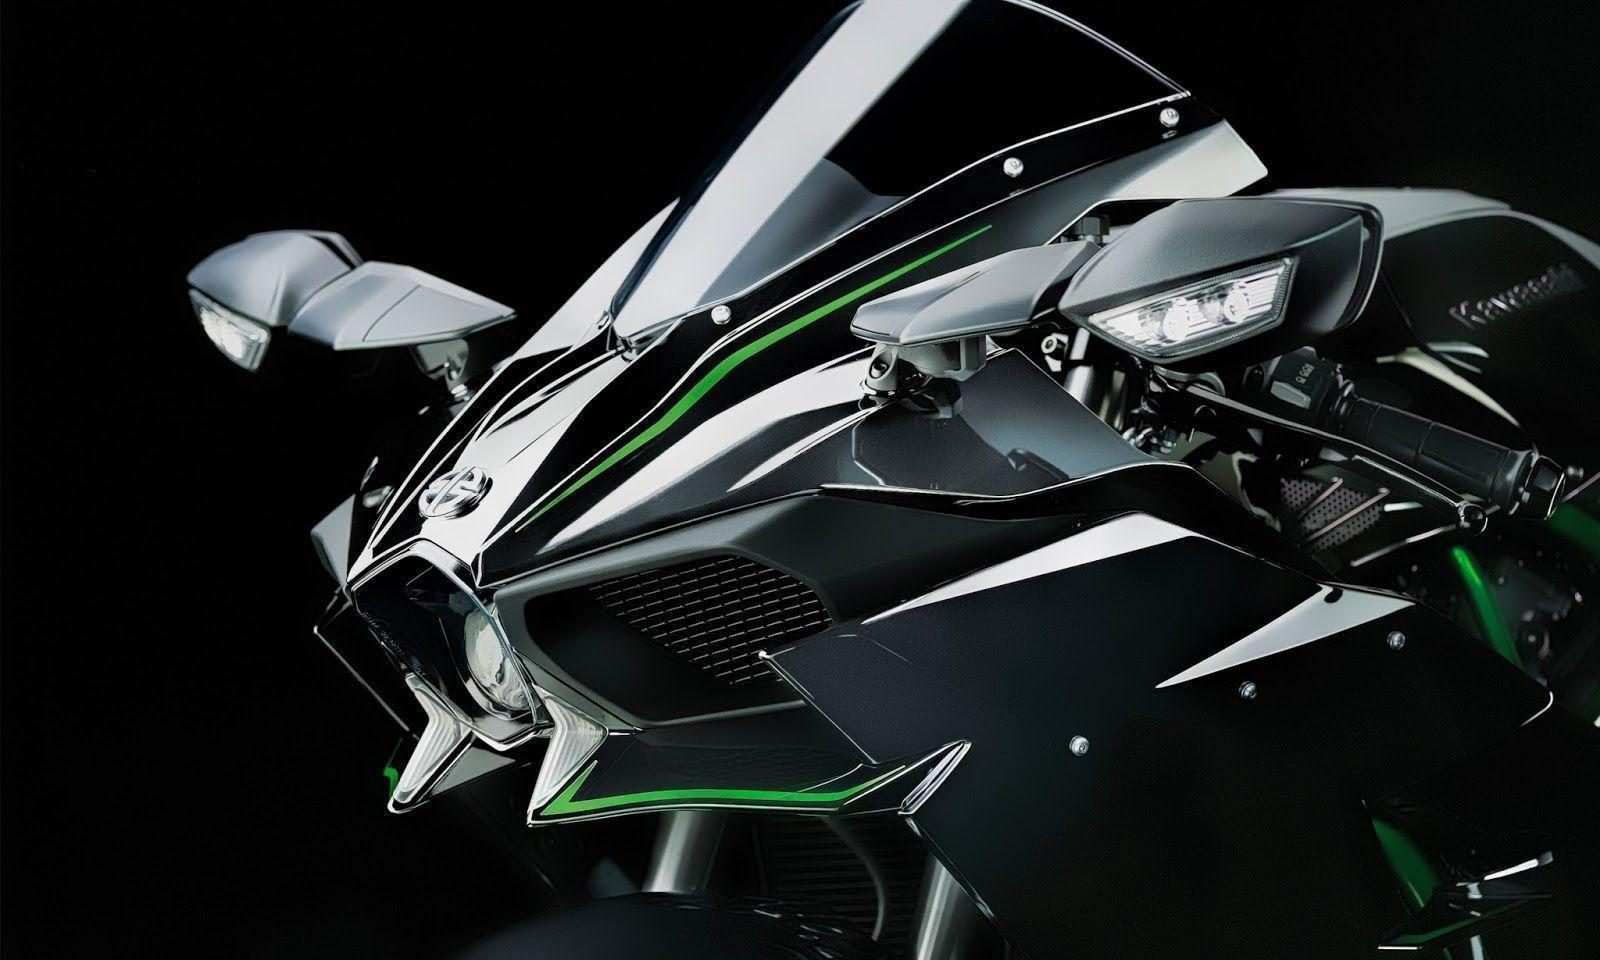 Kawasaki Ninja H2R HD Wallpapers